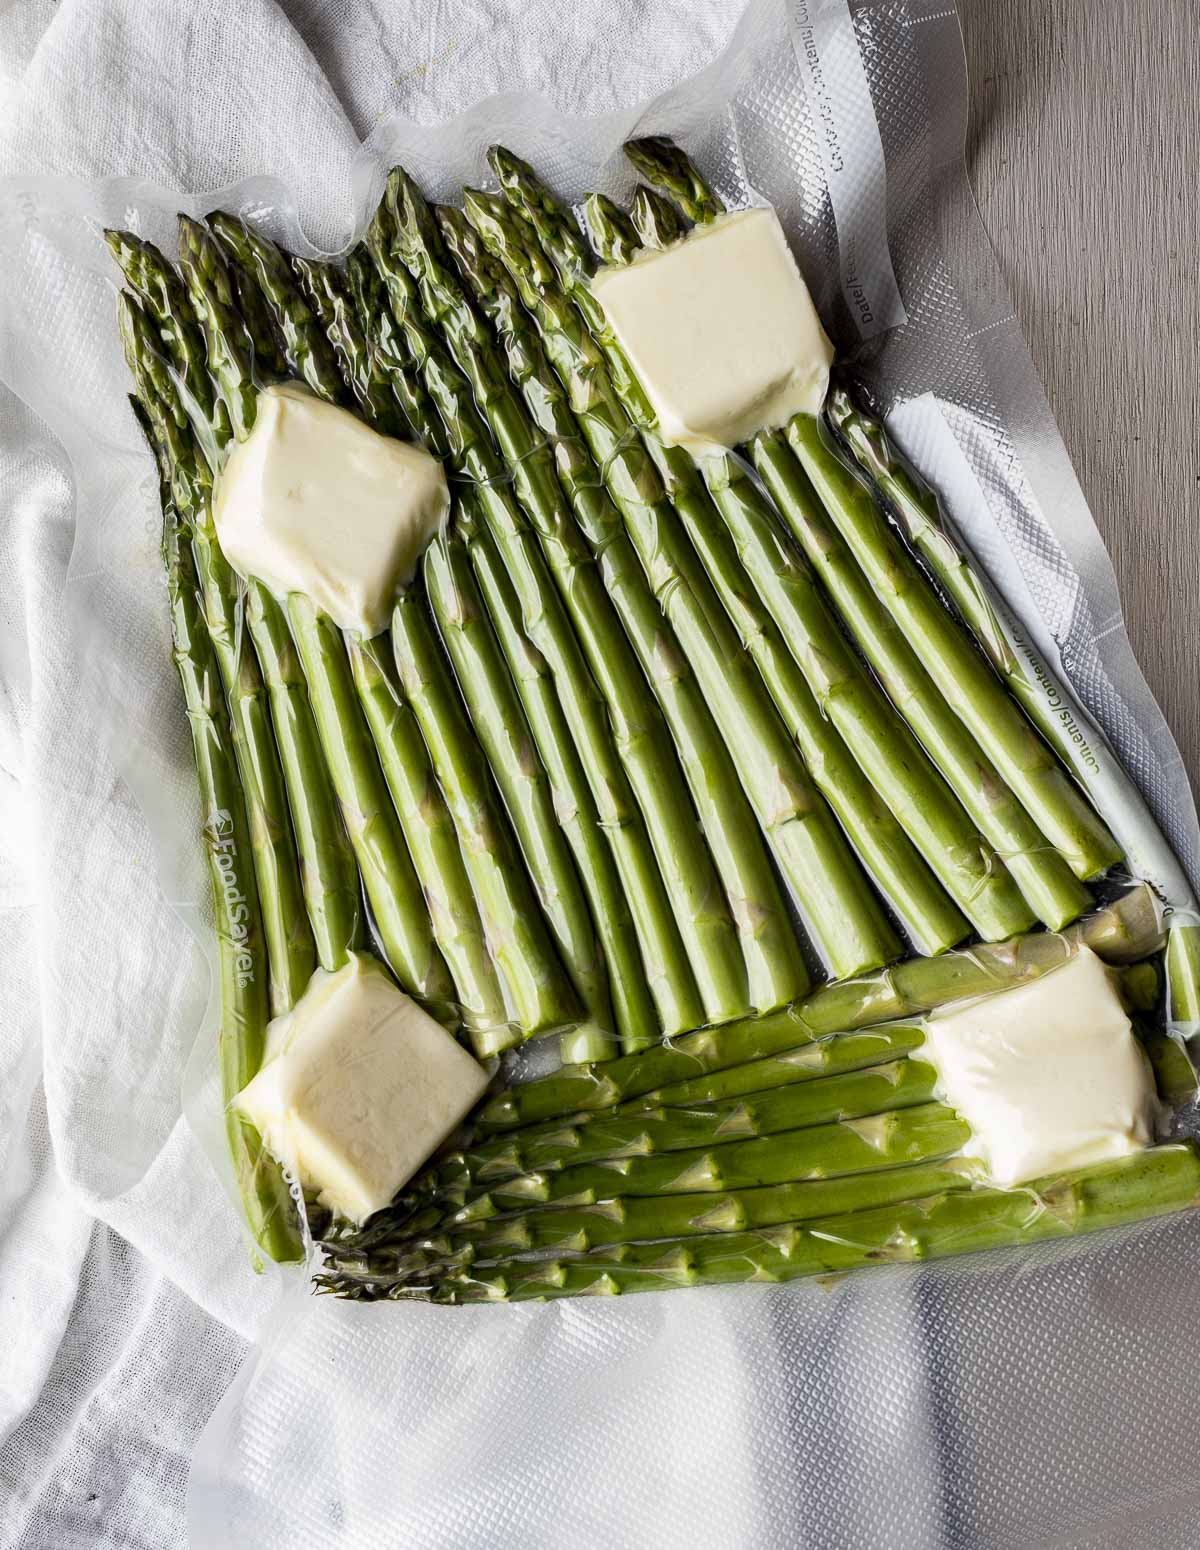 Asparagus spears and butter vacuum sealed in a bag.